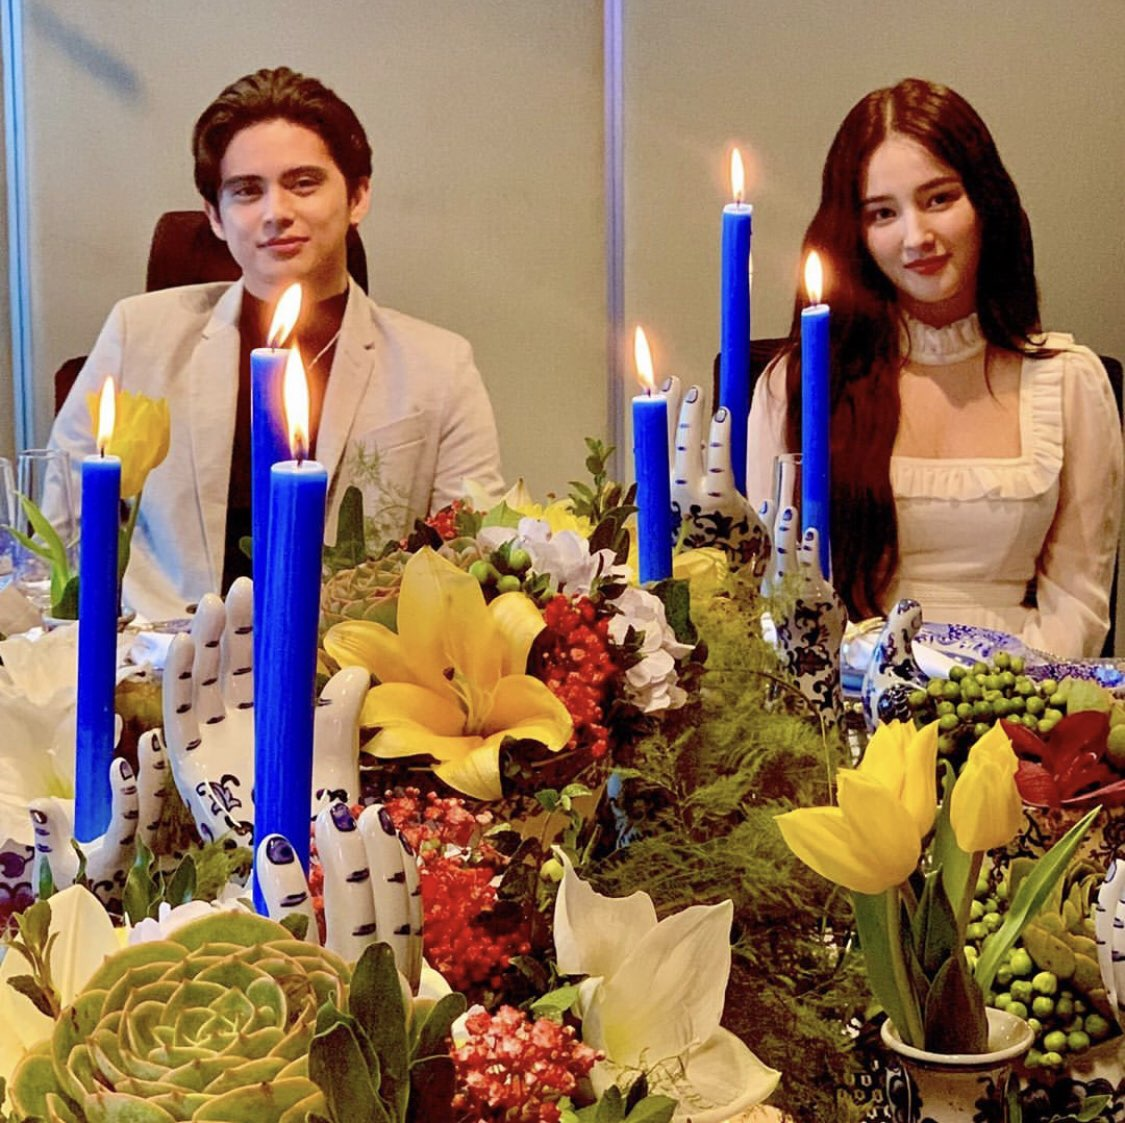 James Reid teams up with MomoLand's Nancy in new TV project